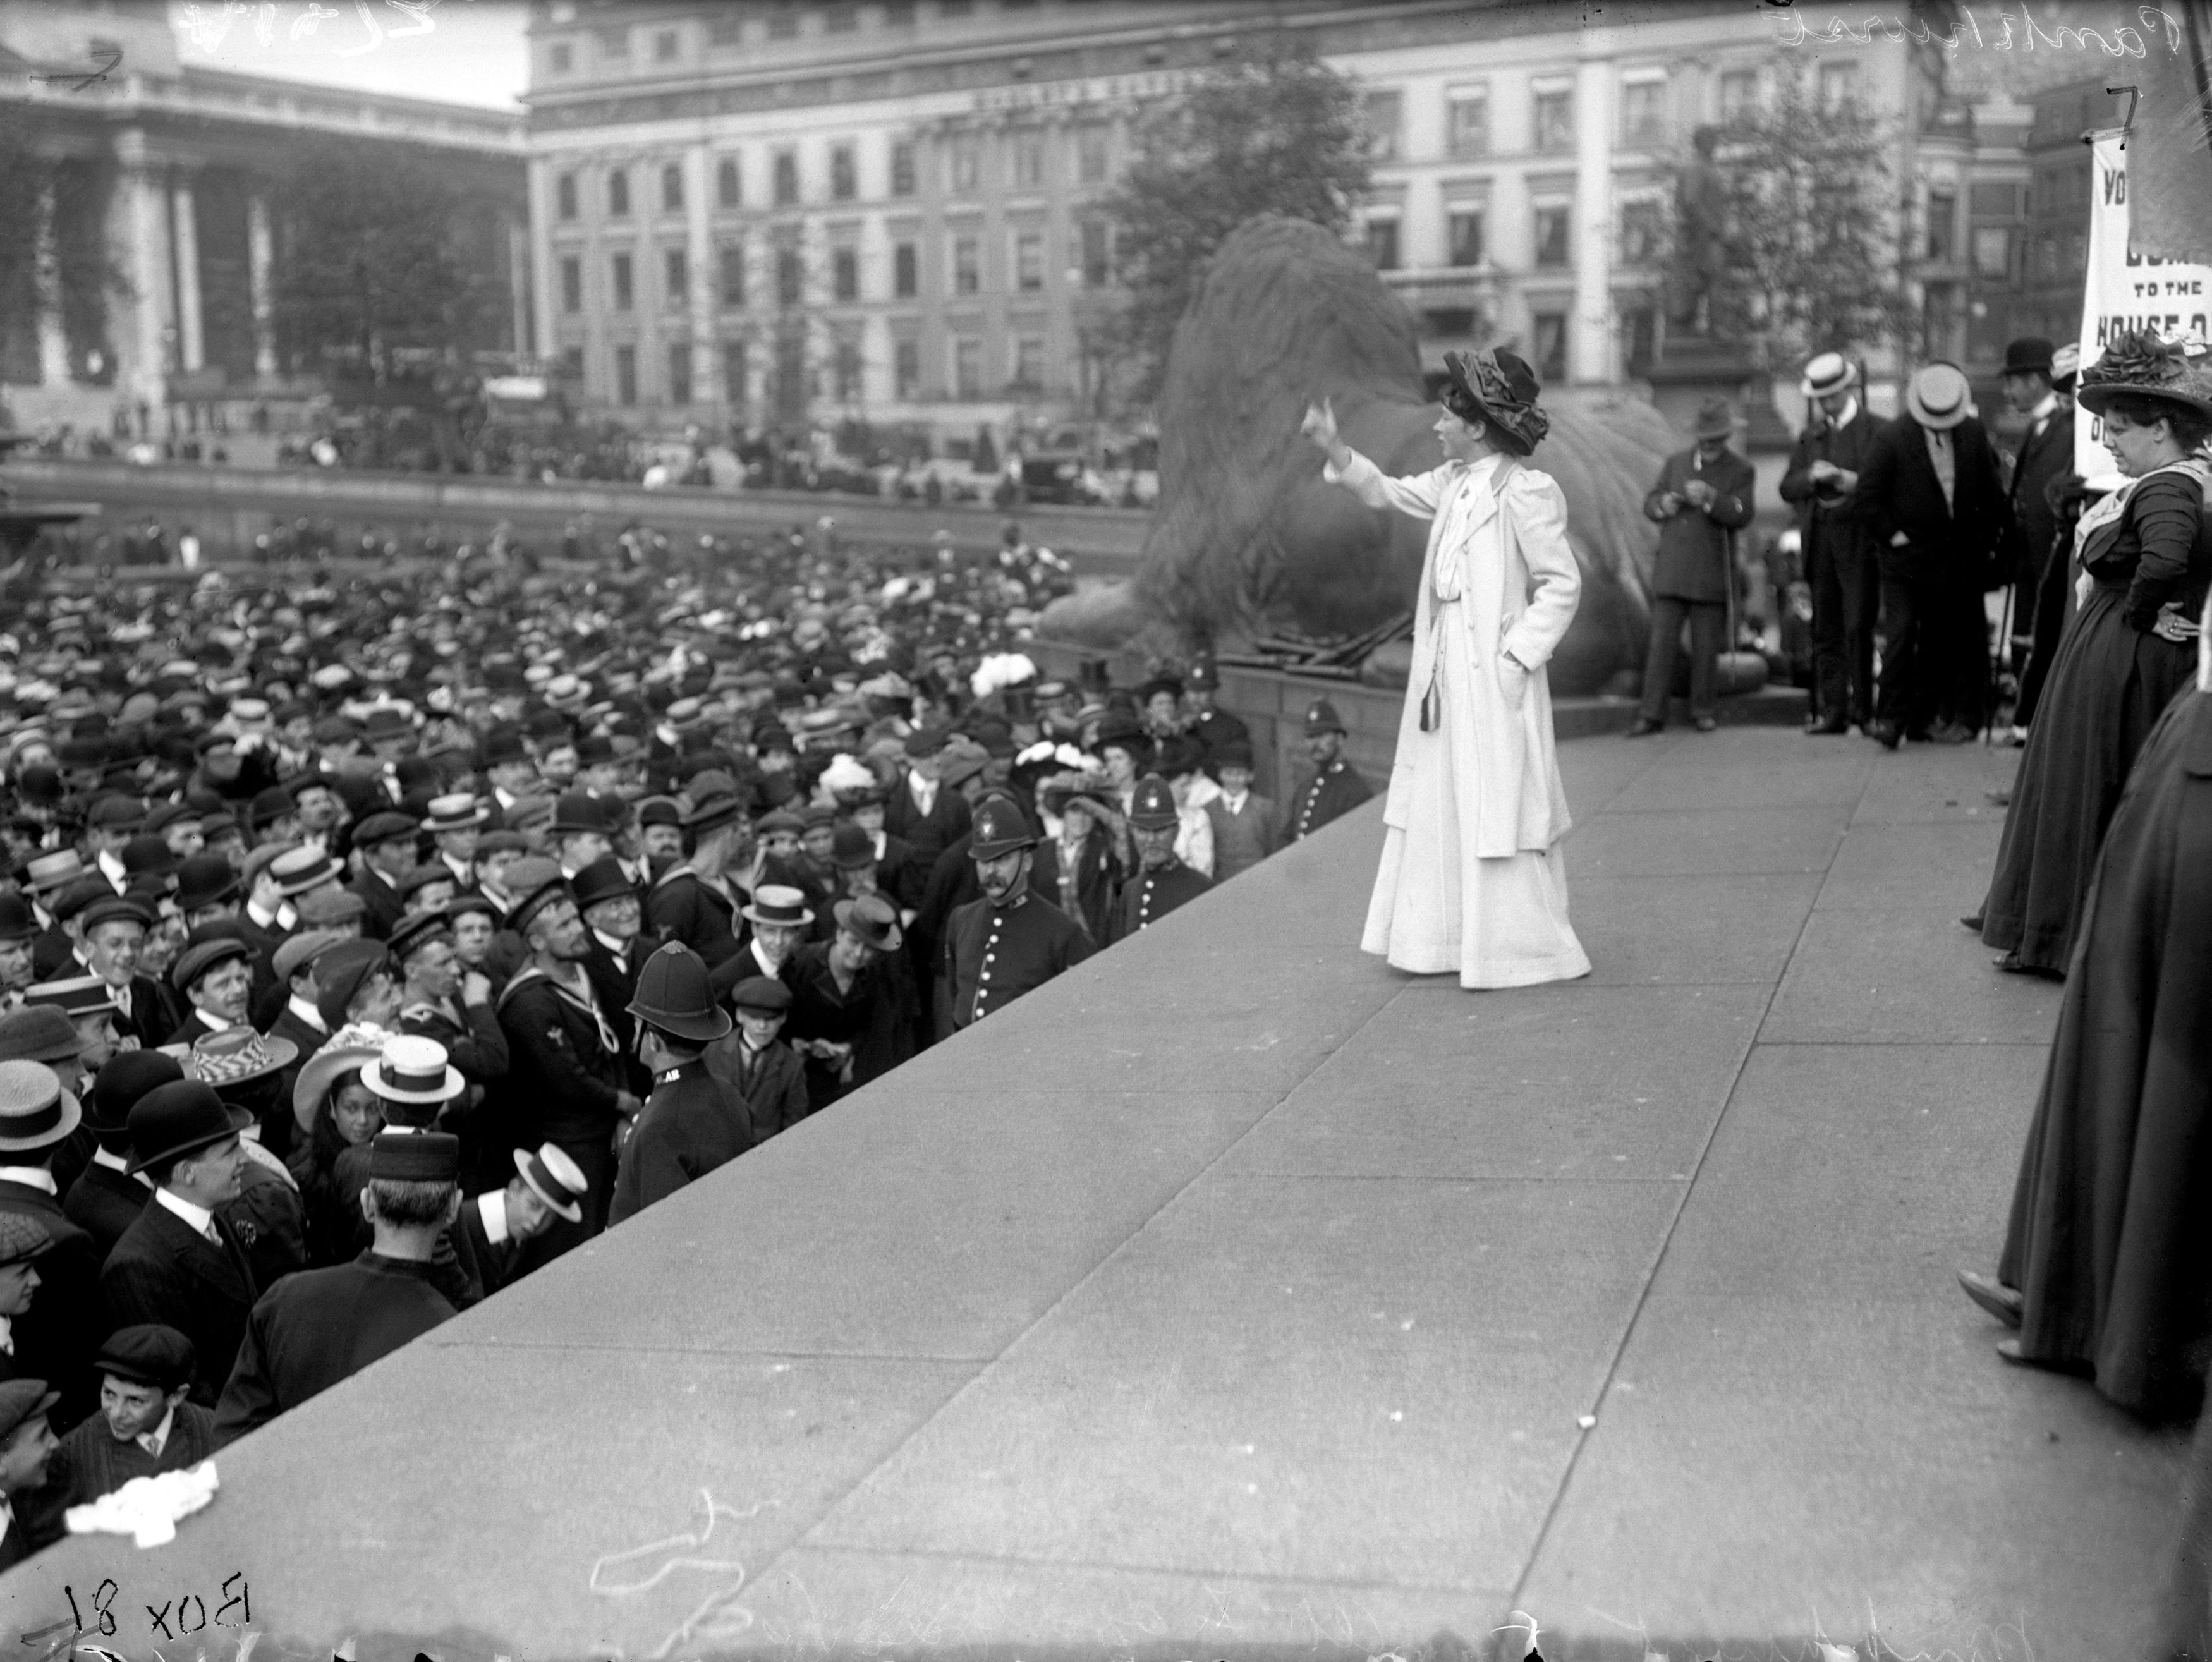 Suffragette Miss Pankhurst addressing the crowd in Trafalgar Square during a rally (PA)